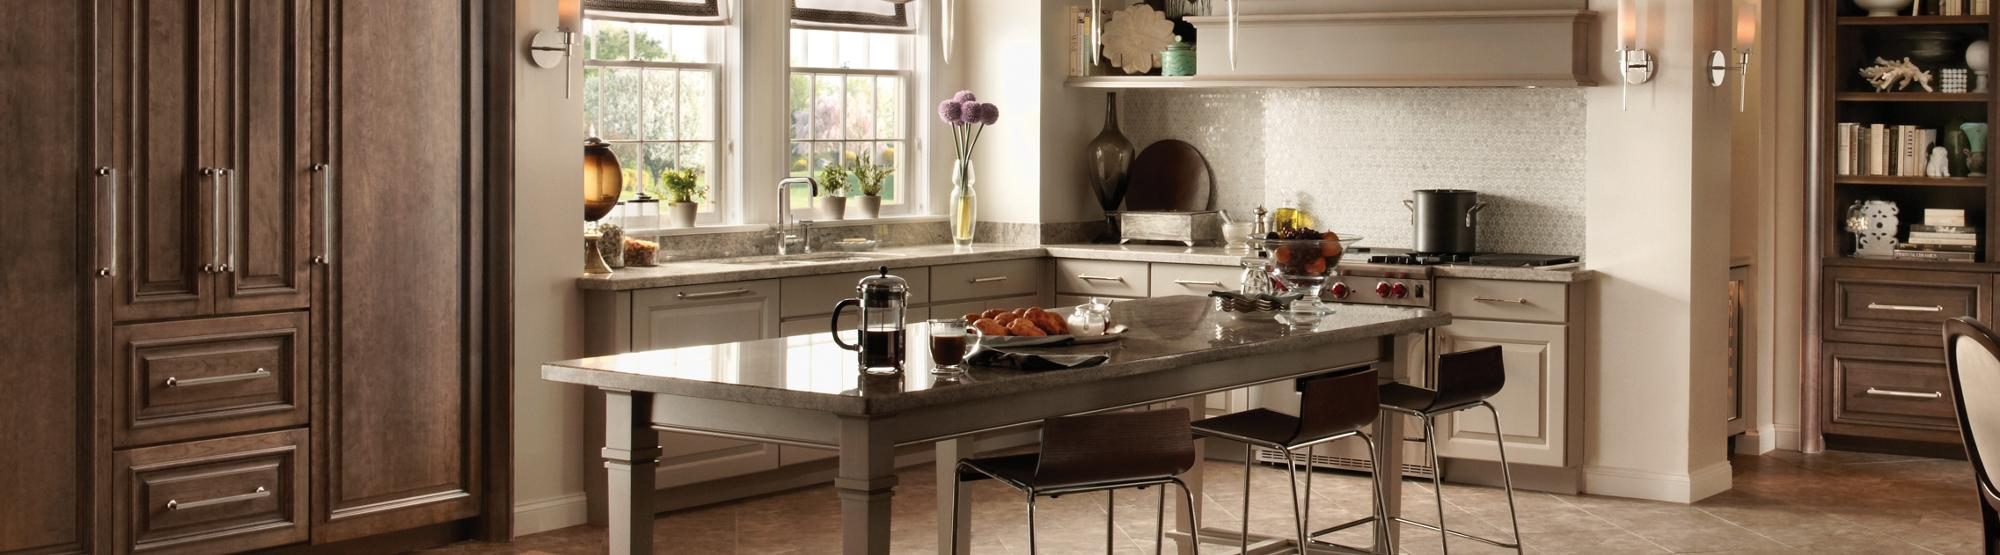 Schuler Cabinetry Smooth, Even Finish